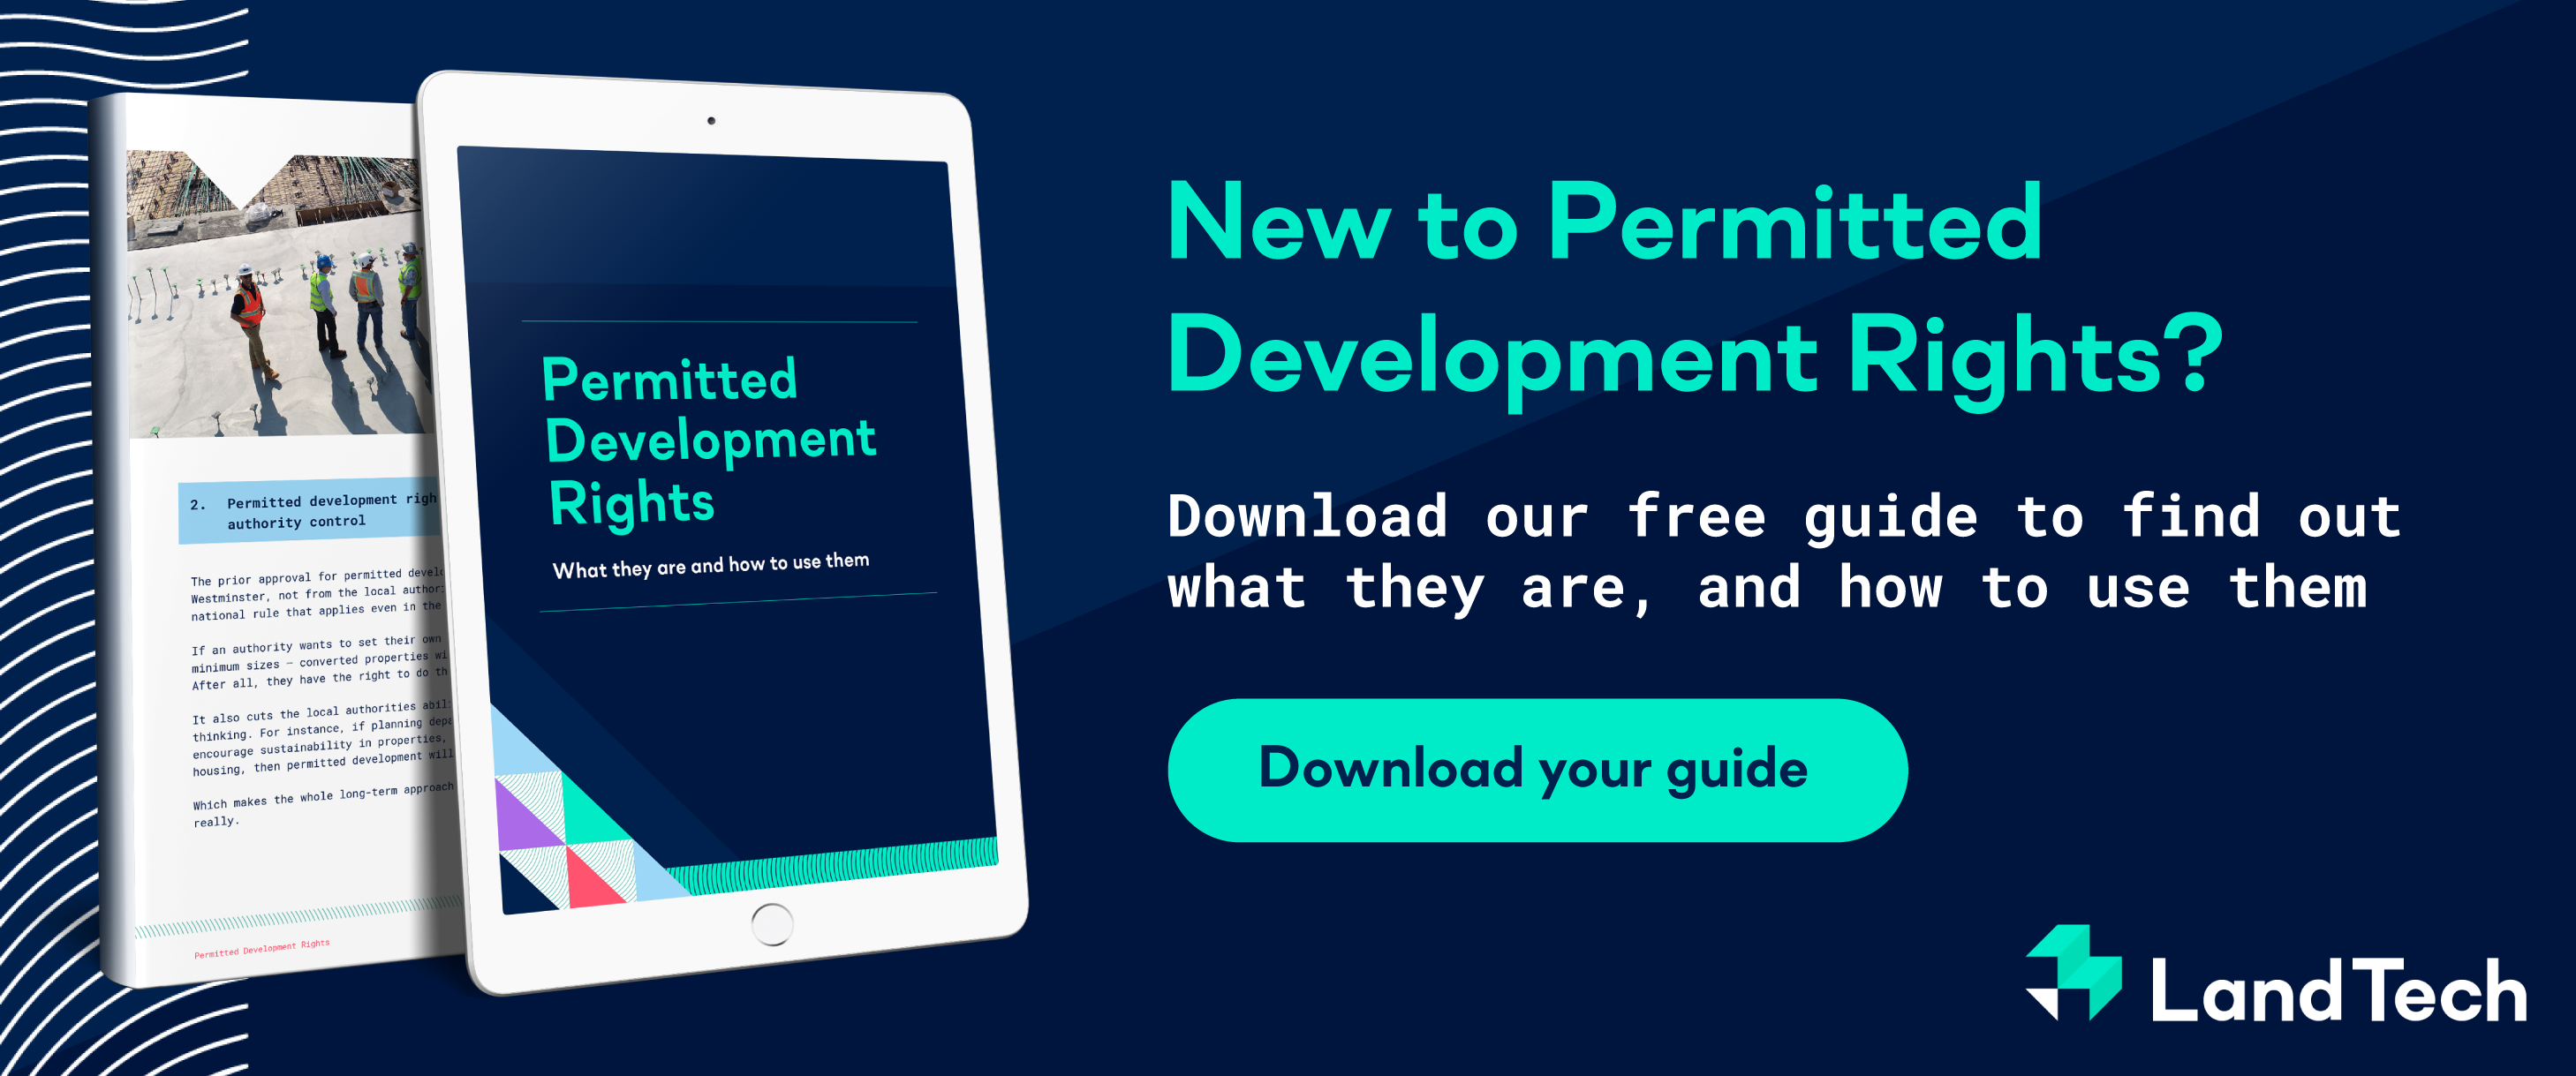 Download your PDR guide